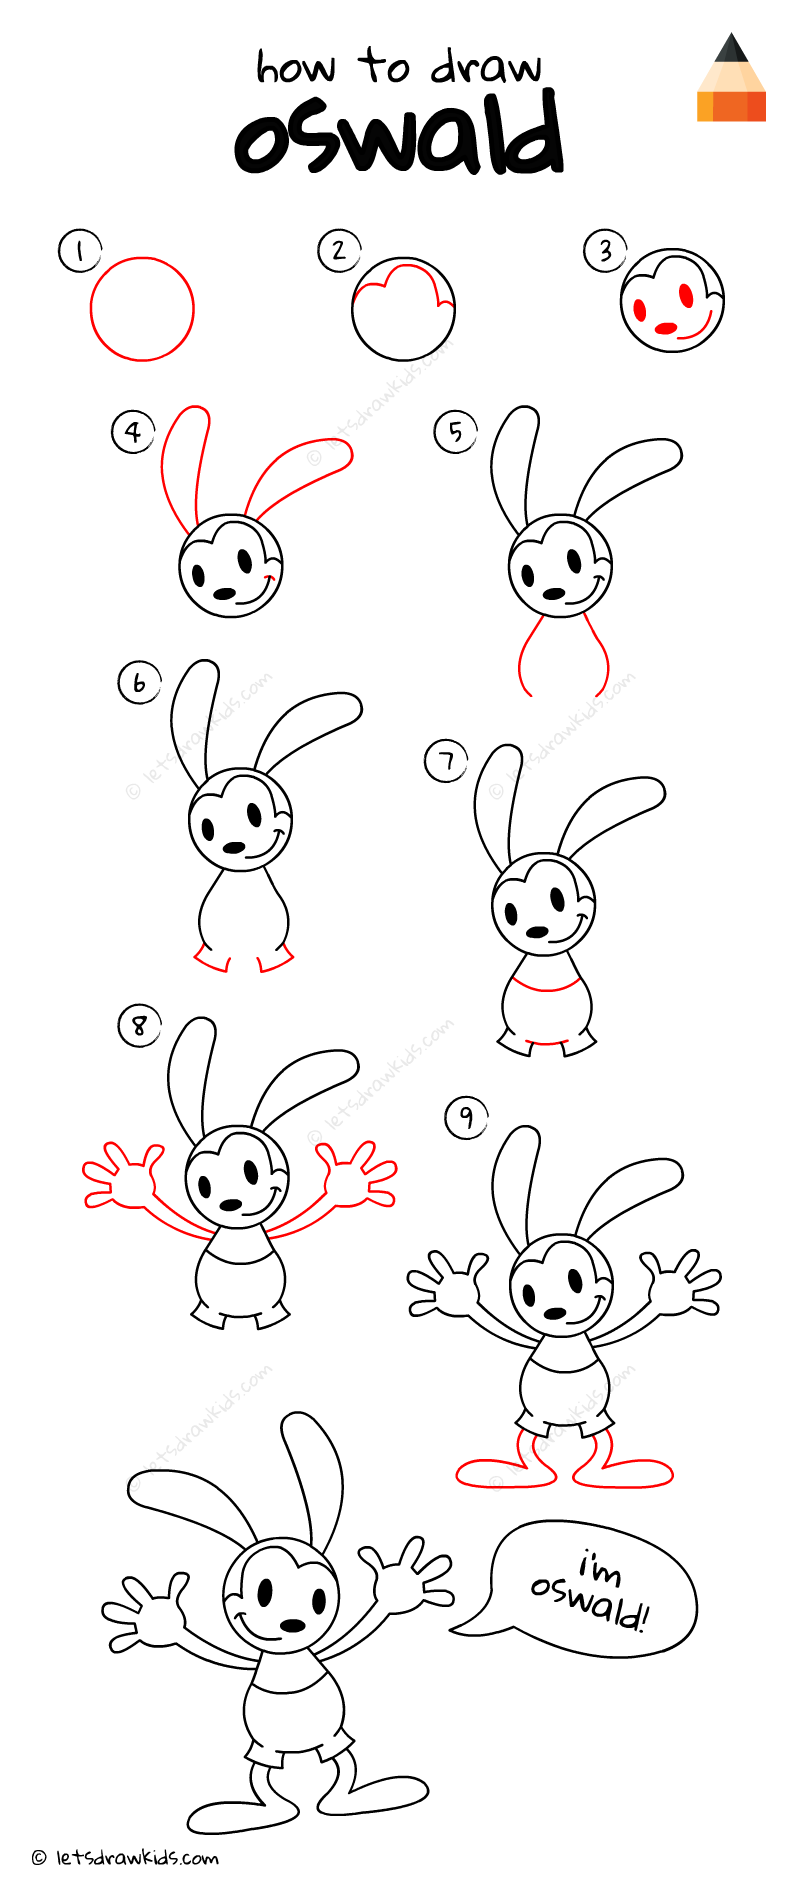 How To Draw Oswald Oswald The Lucky Rabbit Rabbit Drawing Drawings